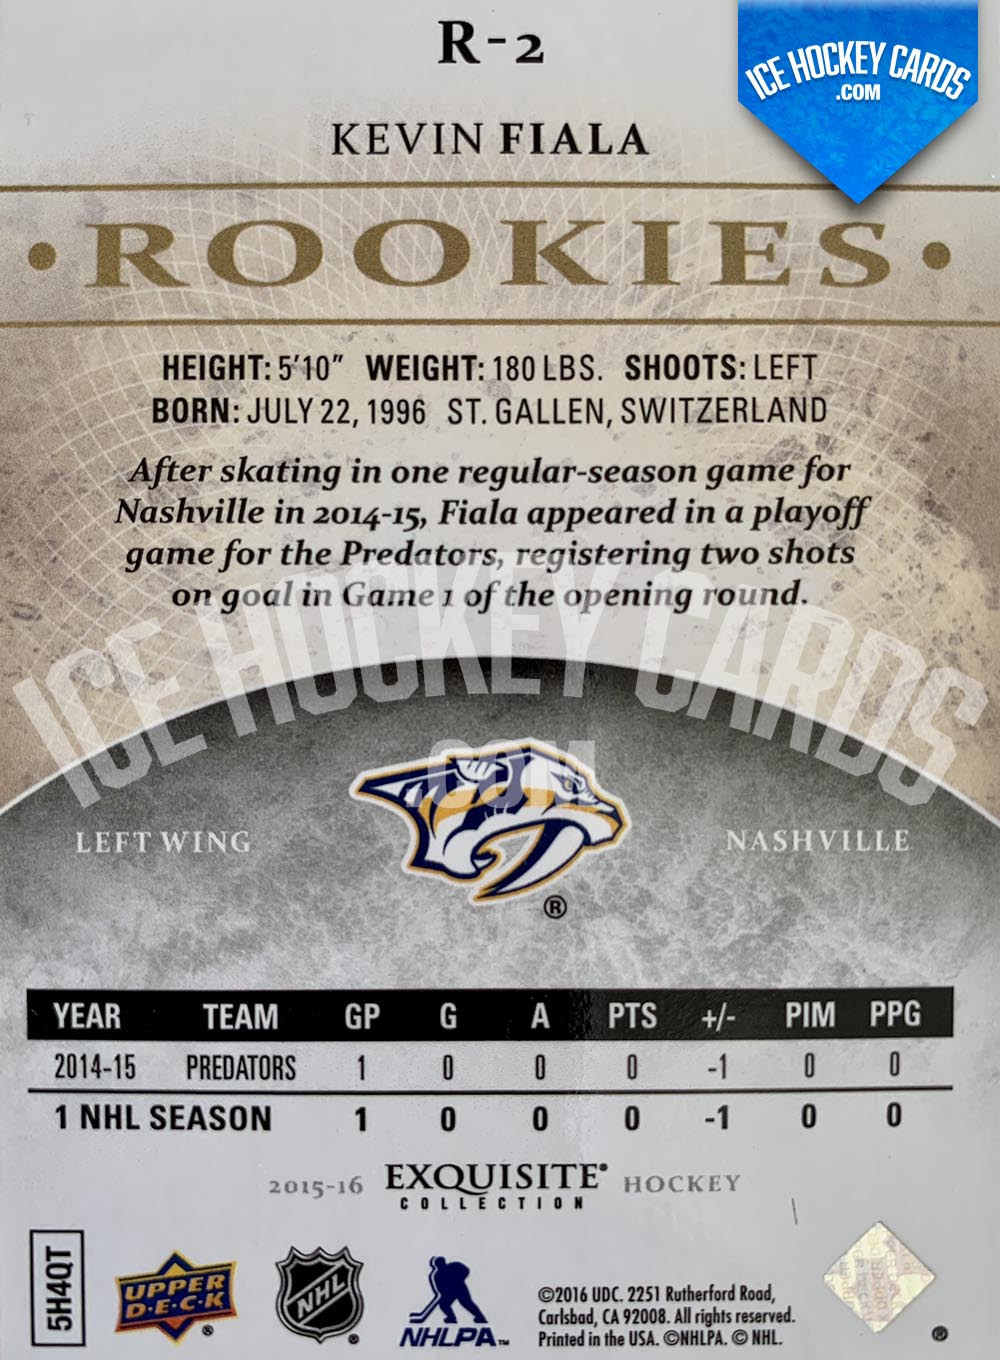 Upper-Deck-Exquisite-Collection-2015-16-Kevin-Fiala-Exquisite-Collection-Rookies-Card-back